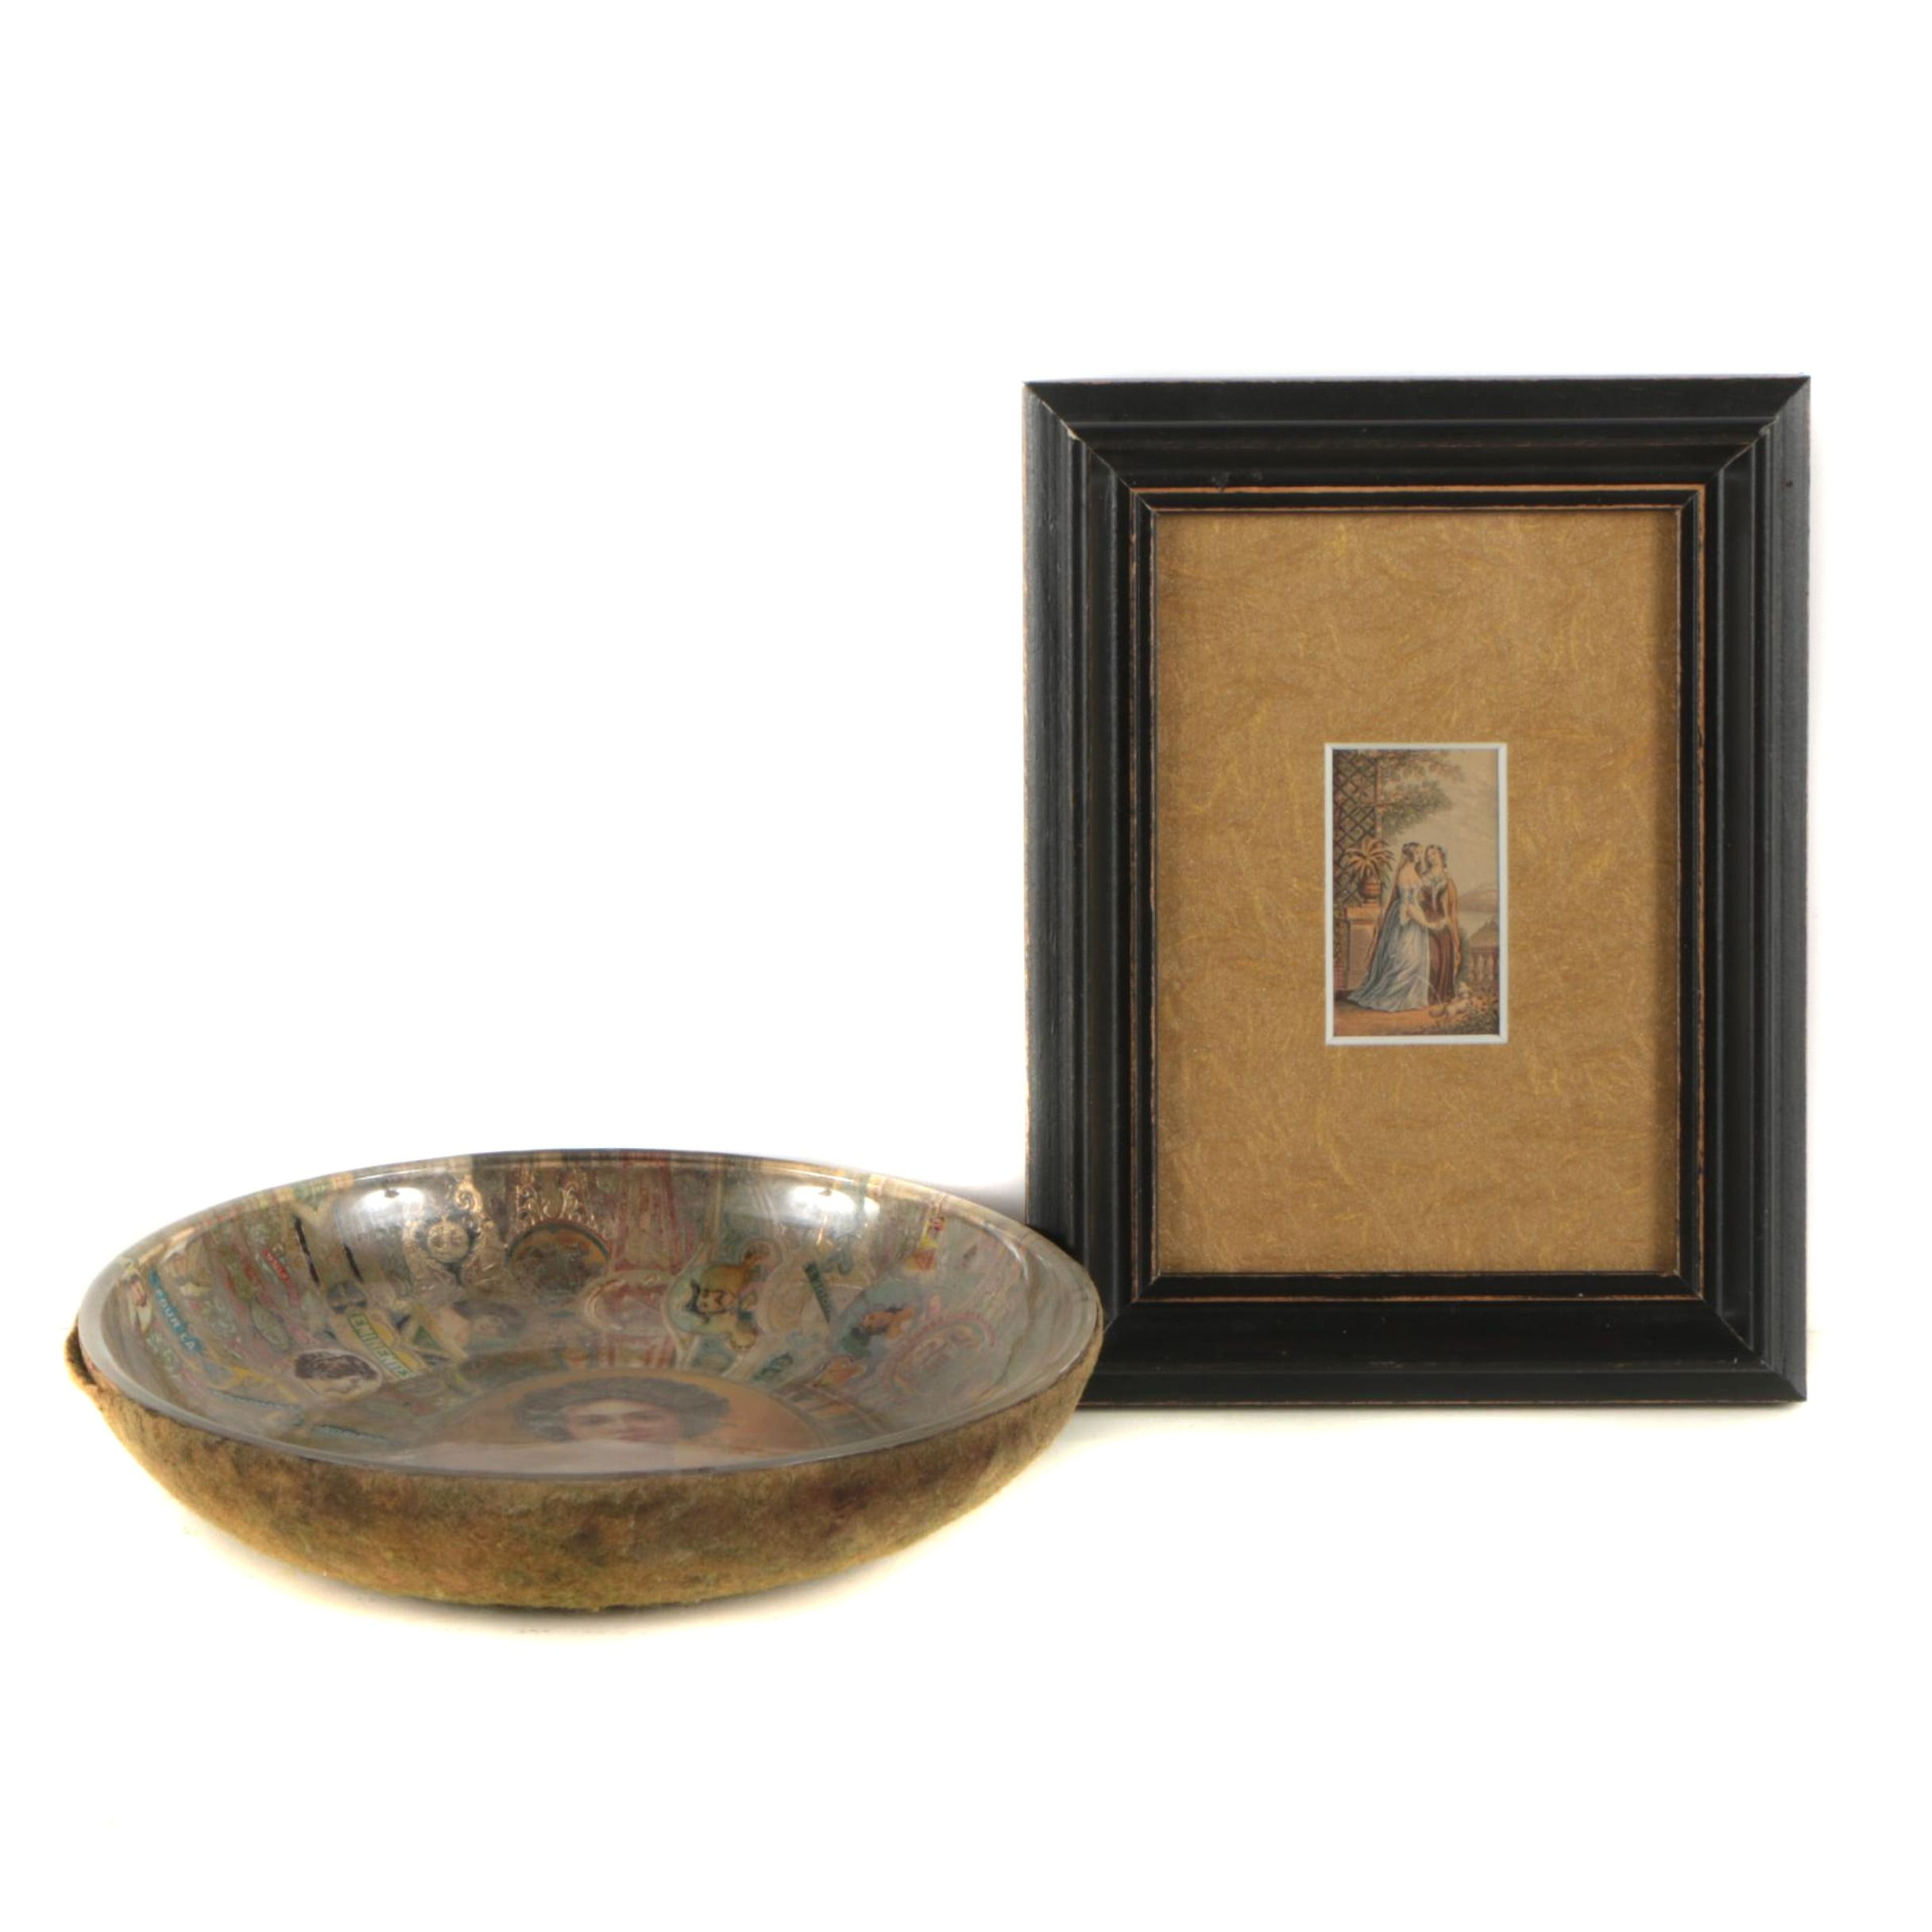 Hand-Colored Engraving and Bowl with Cigar Label Decoration